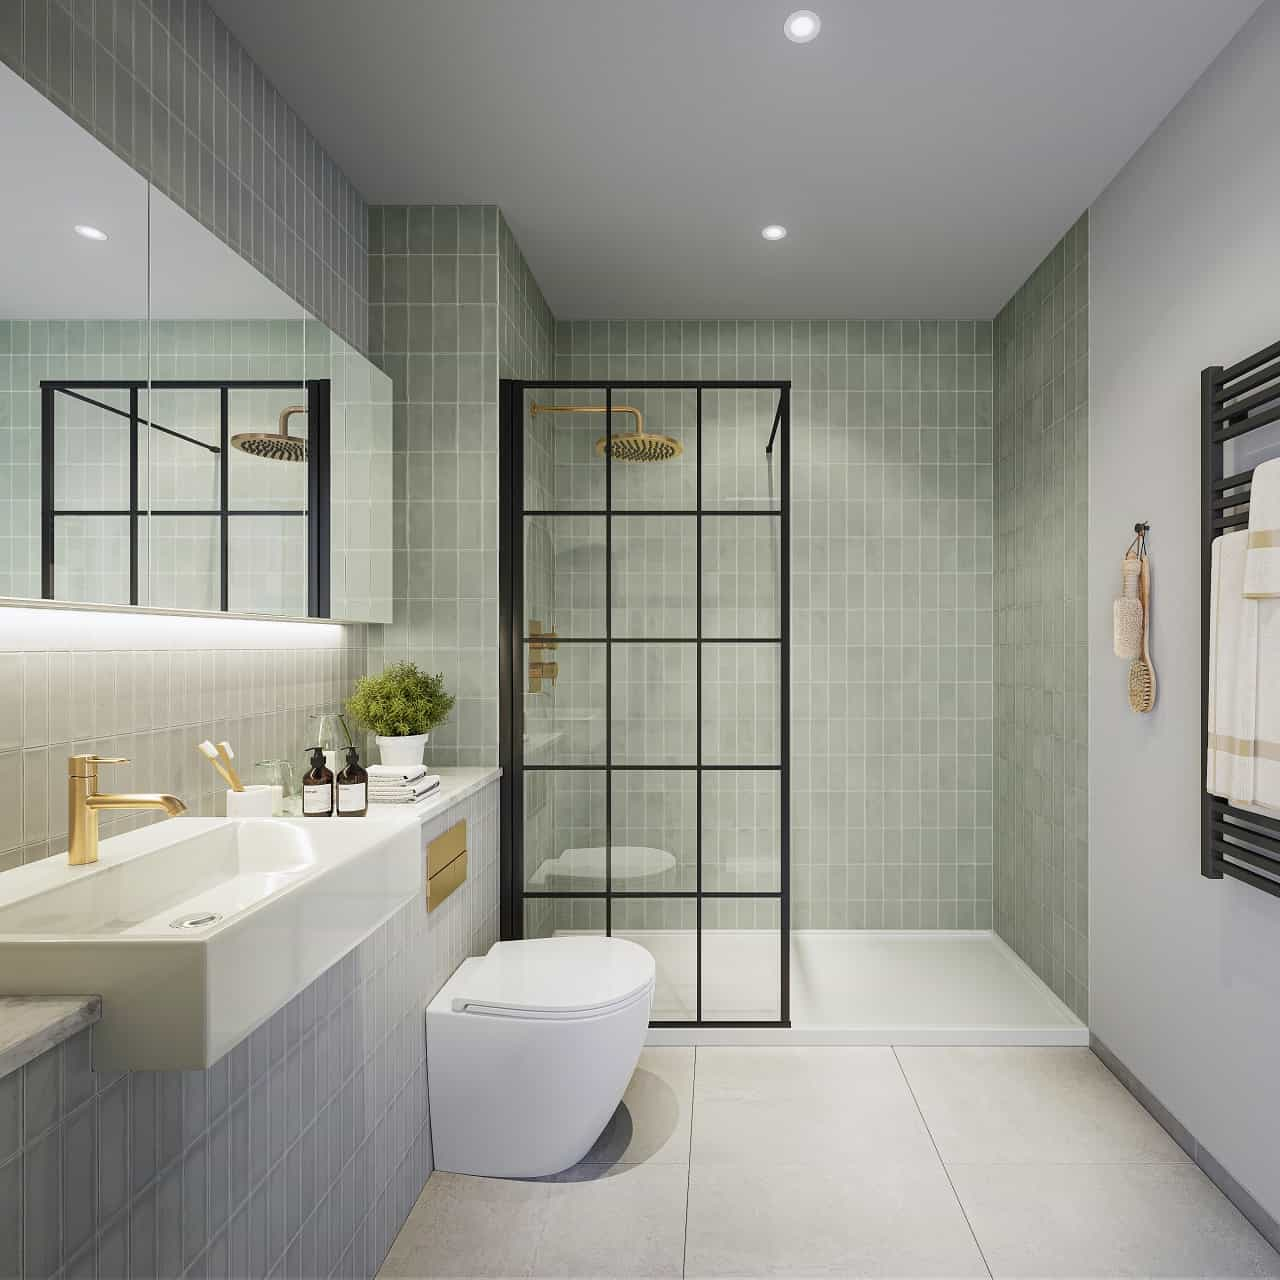 Raeon-New-Cross-Central-_HawkinsBrown_NewCrossCentral_Bathroom_V5.0